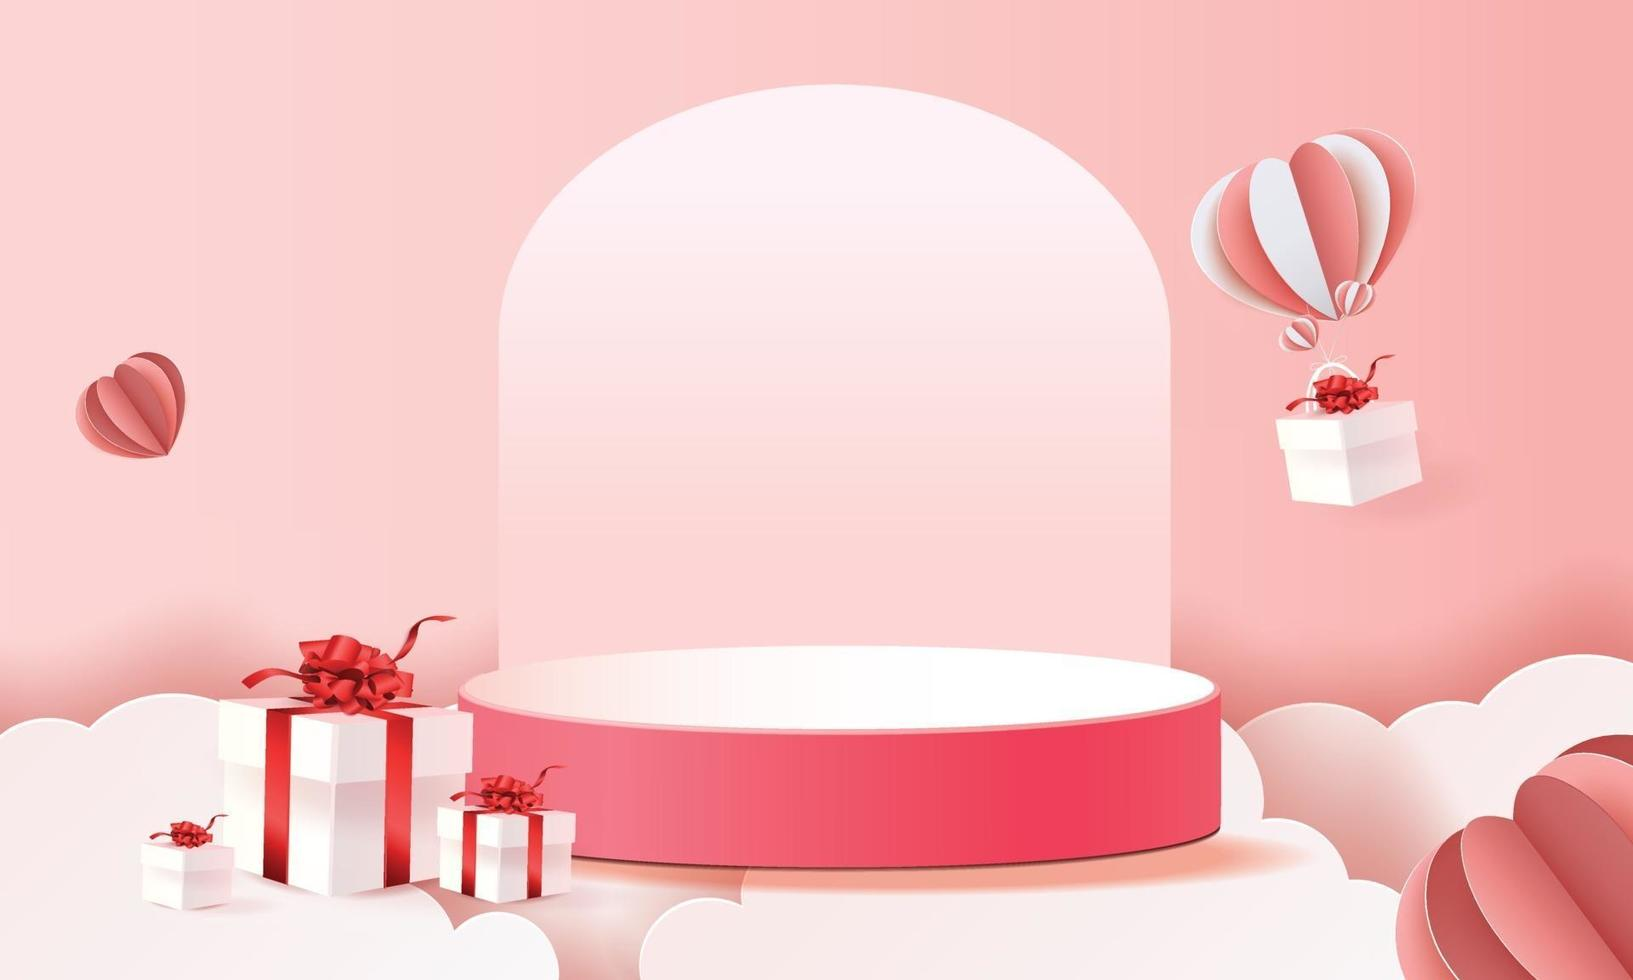 3d paper art podium in clouds for valentine's with hearts and gifts vector